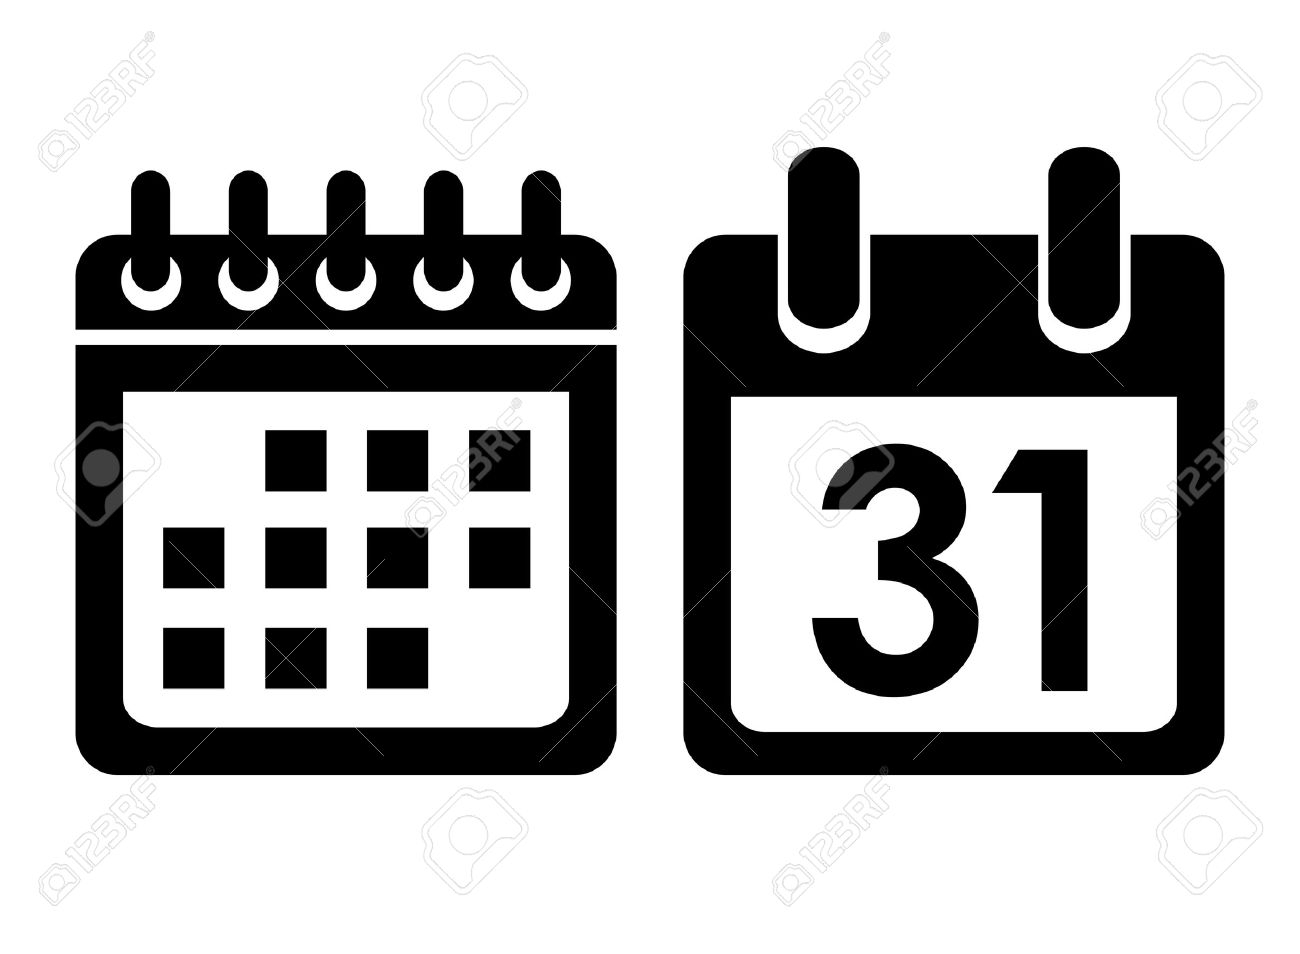 Calendar Icon pertaining to Calendar Icon Jpg